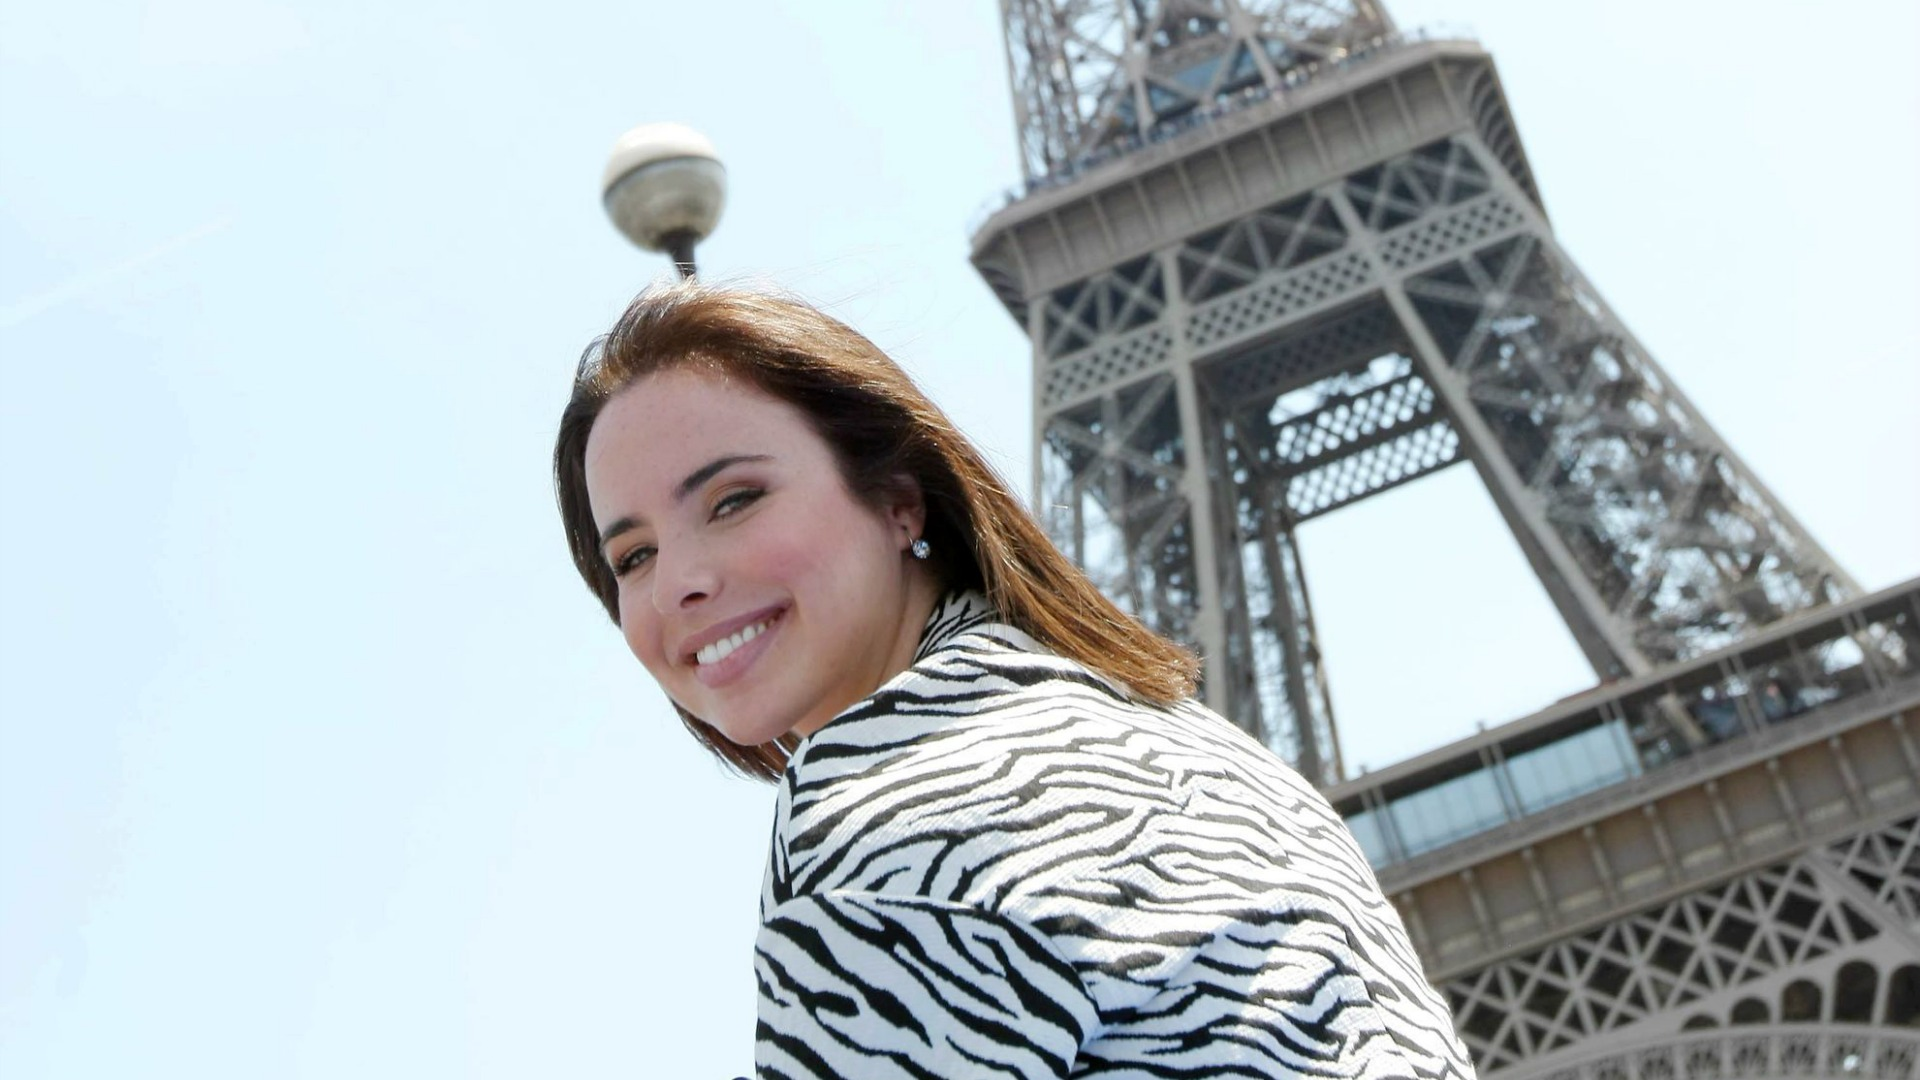 Ashleigh Brewer beamed while visiting the City of Love.